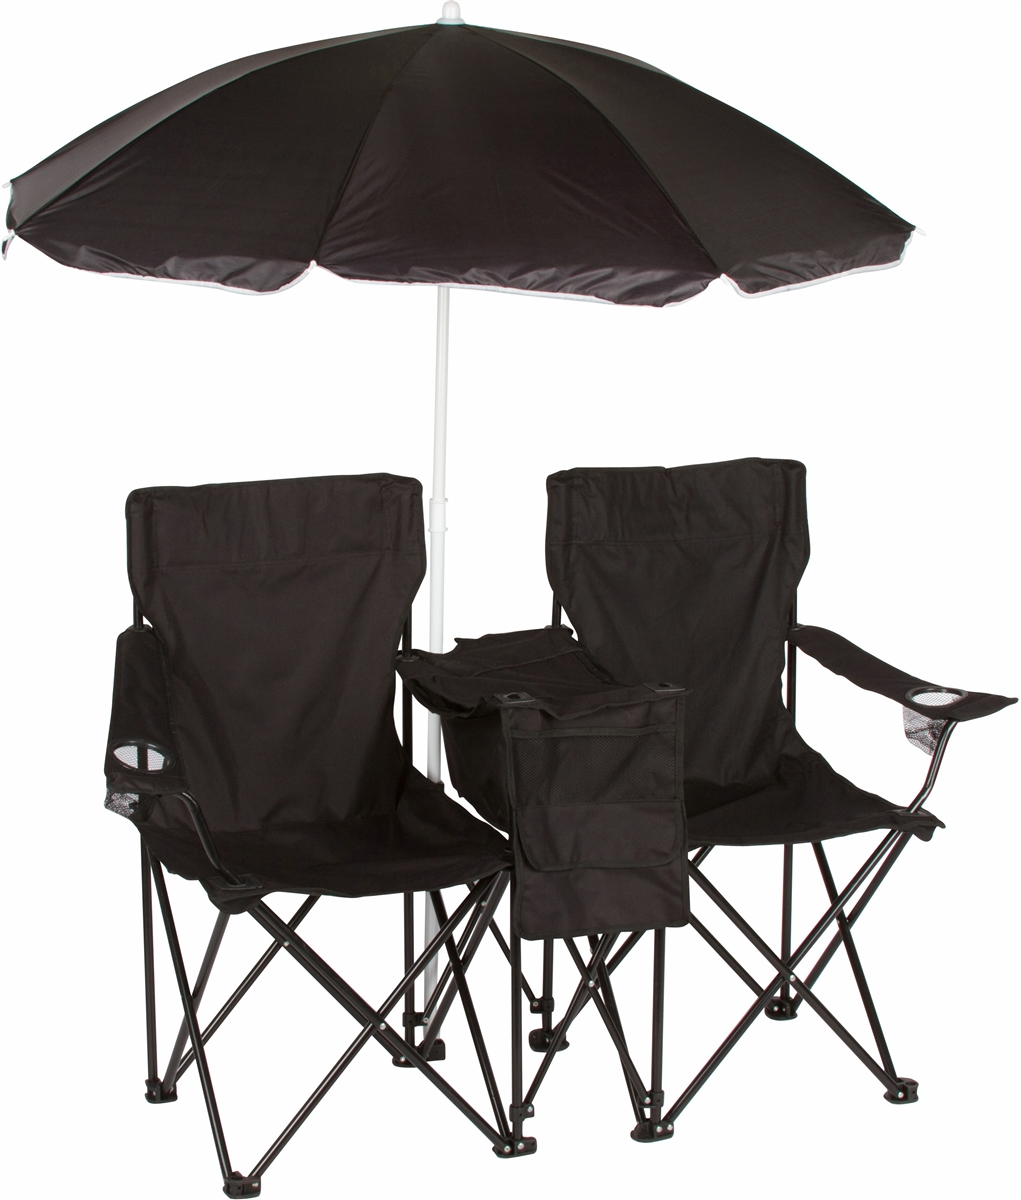 Beach Chairs With Umbrella Double Folding Camp And Beach Chair With Removable Umbrella And Cooler By Trademark Innovations Black